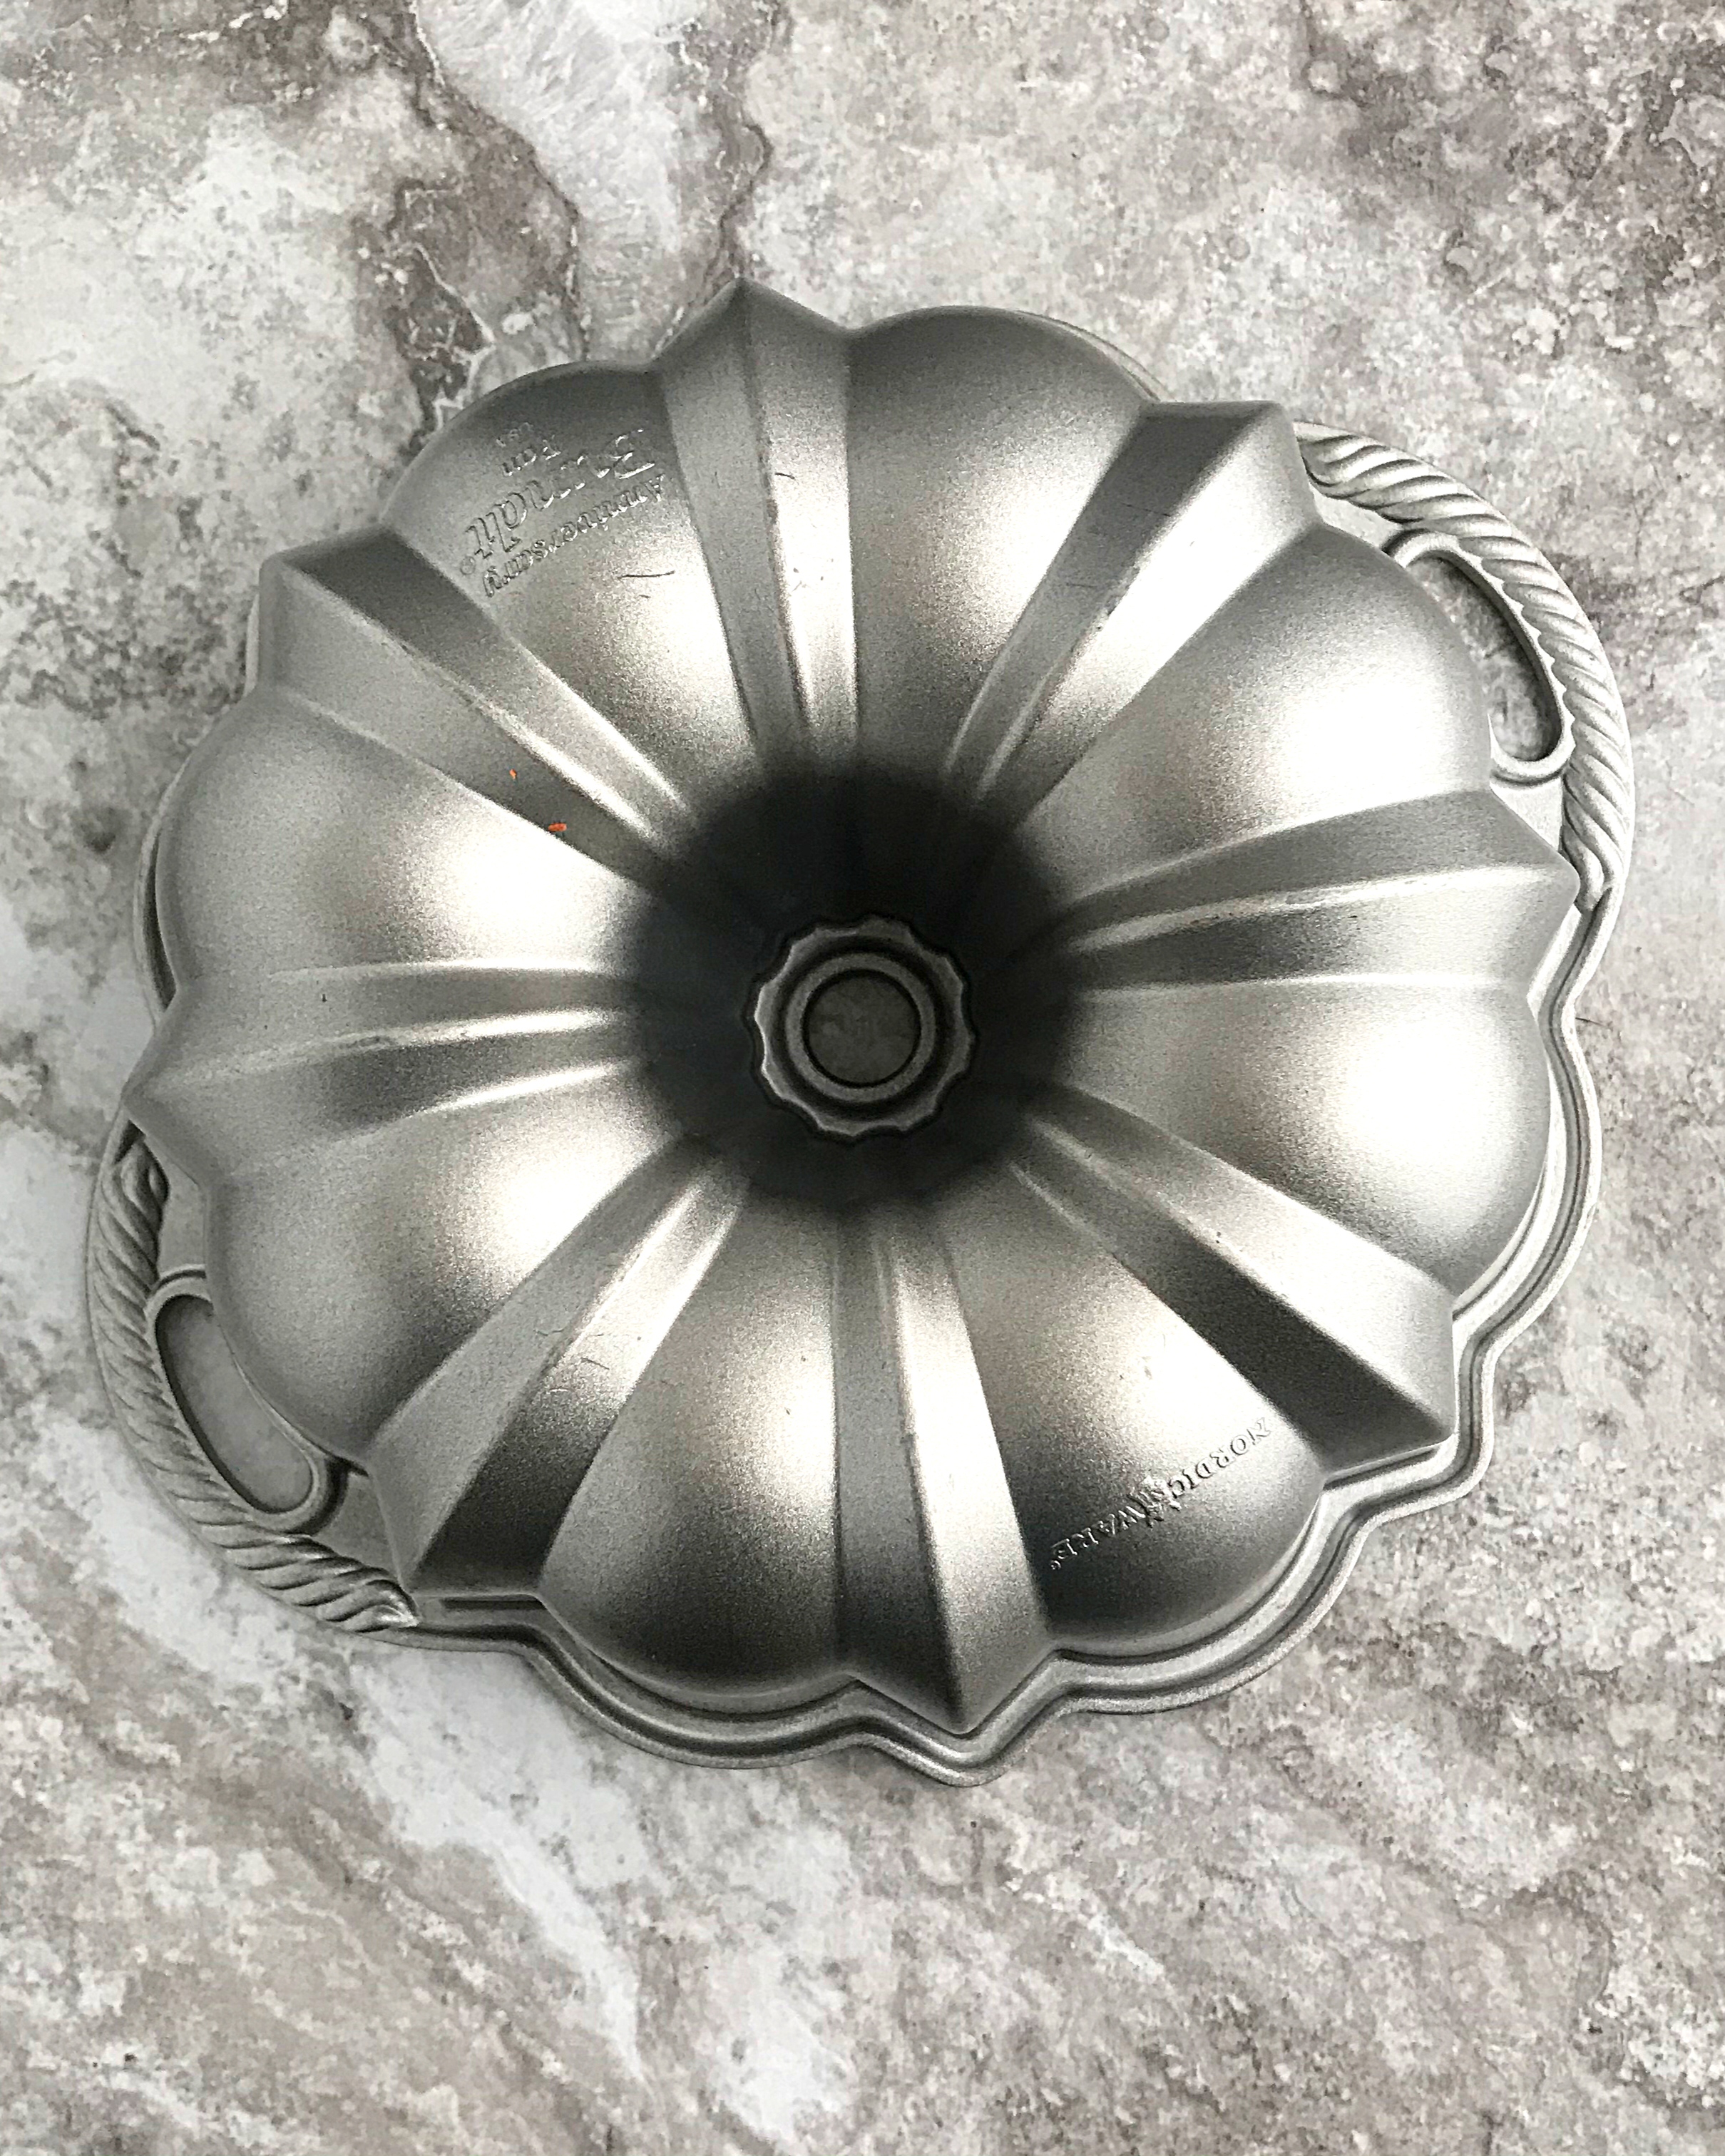 a bundt pan turned right side down